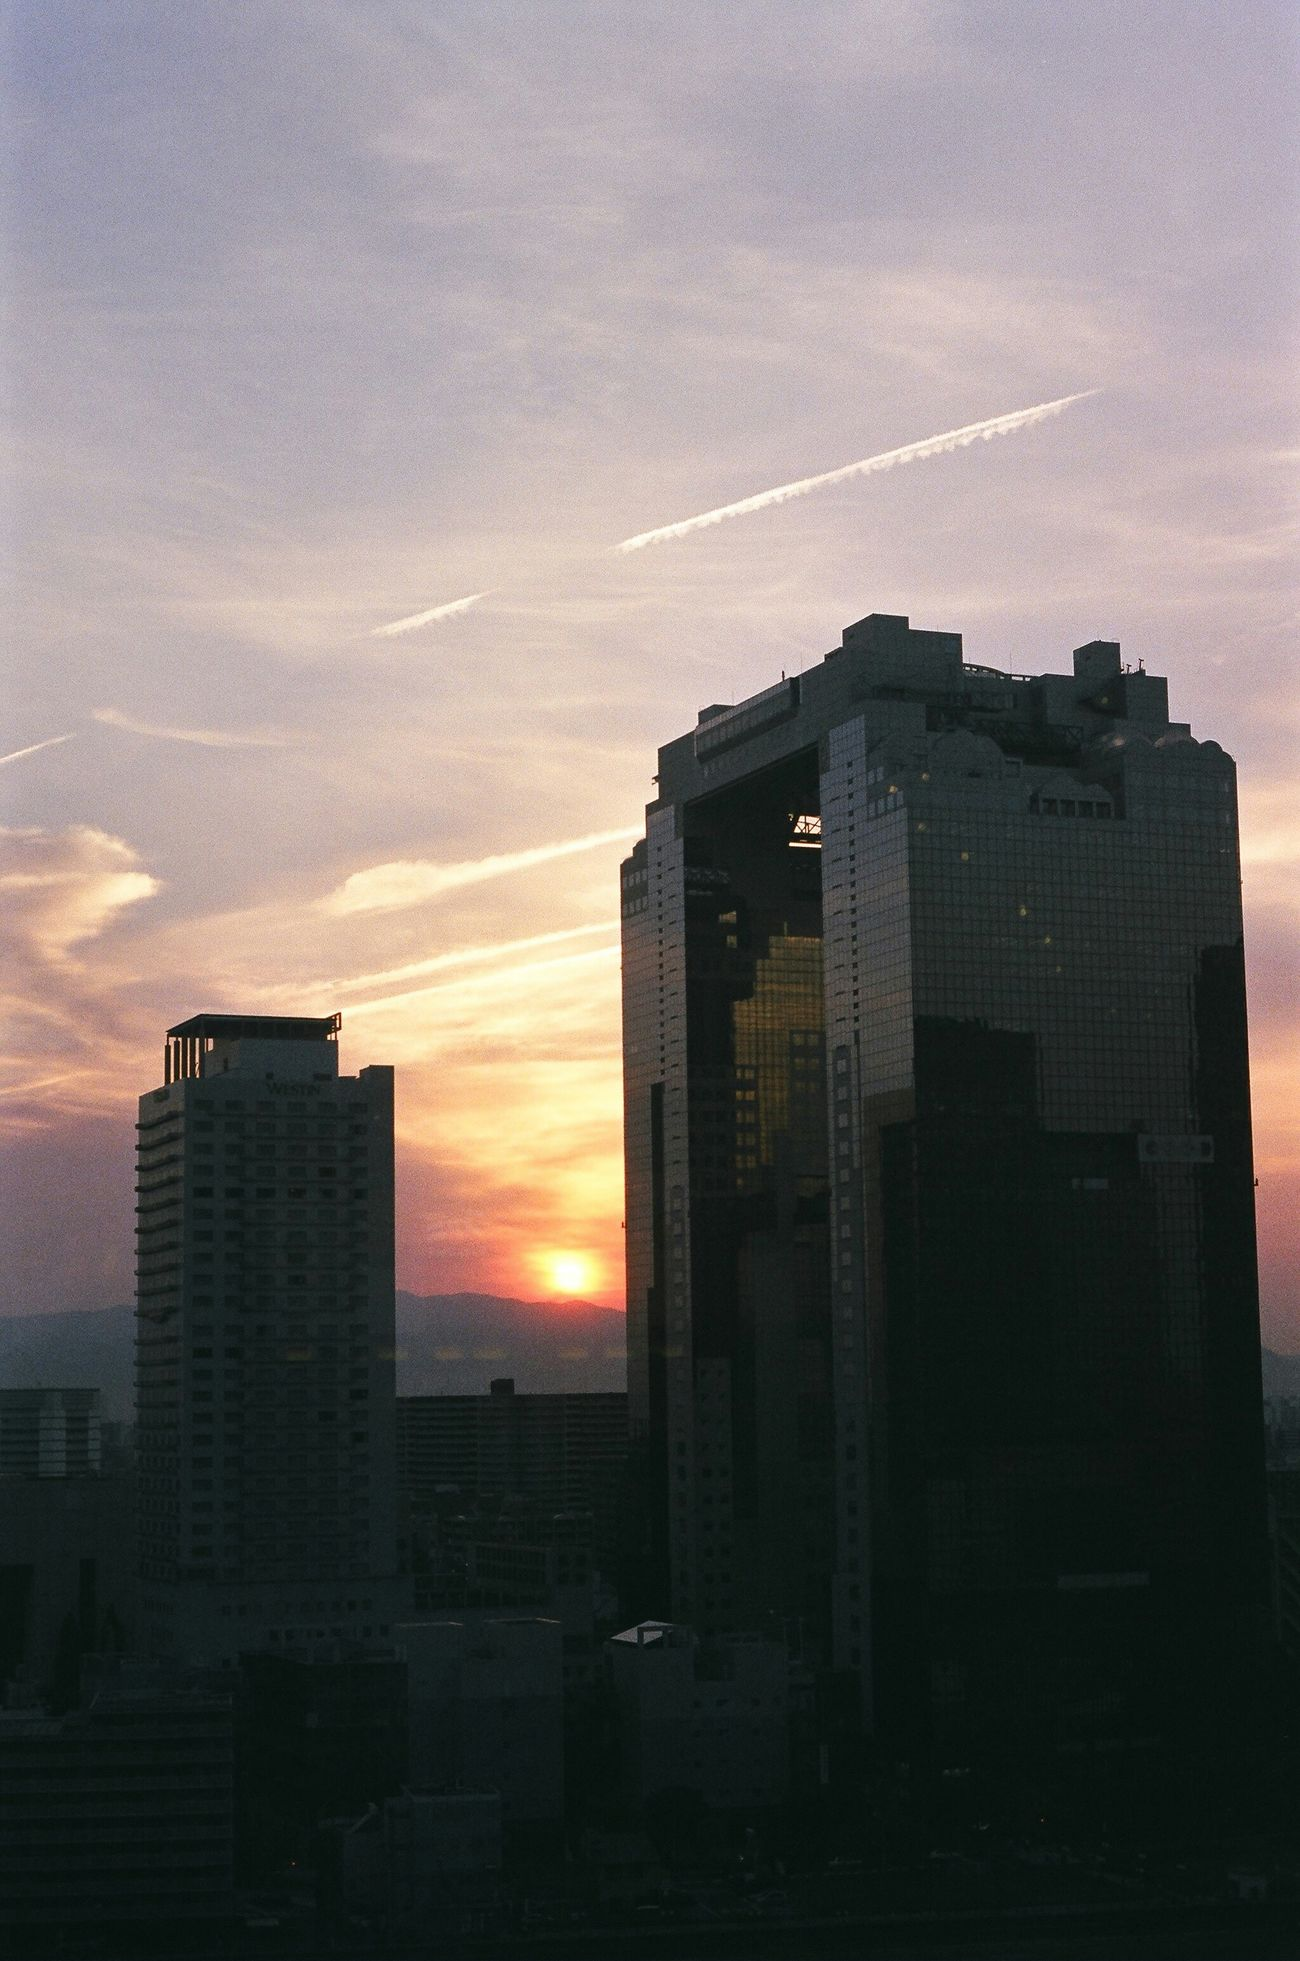 Japan OSAKA Sunset Sunrise Orenge Sky 大阪 Buildings & Sky Building Sky ルクアイーレの屋上から